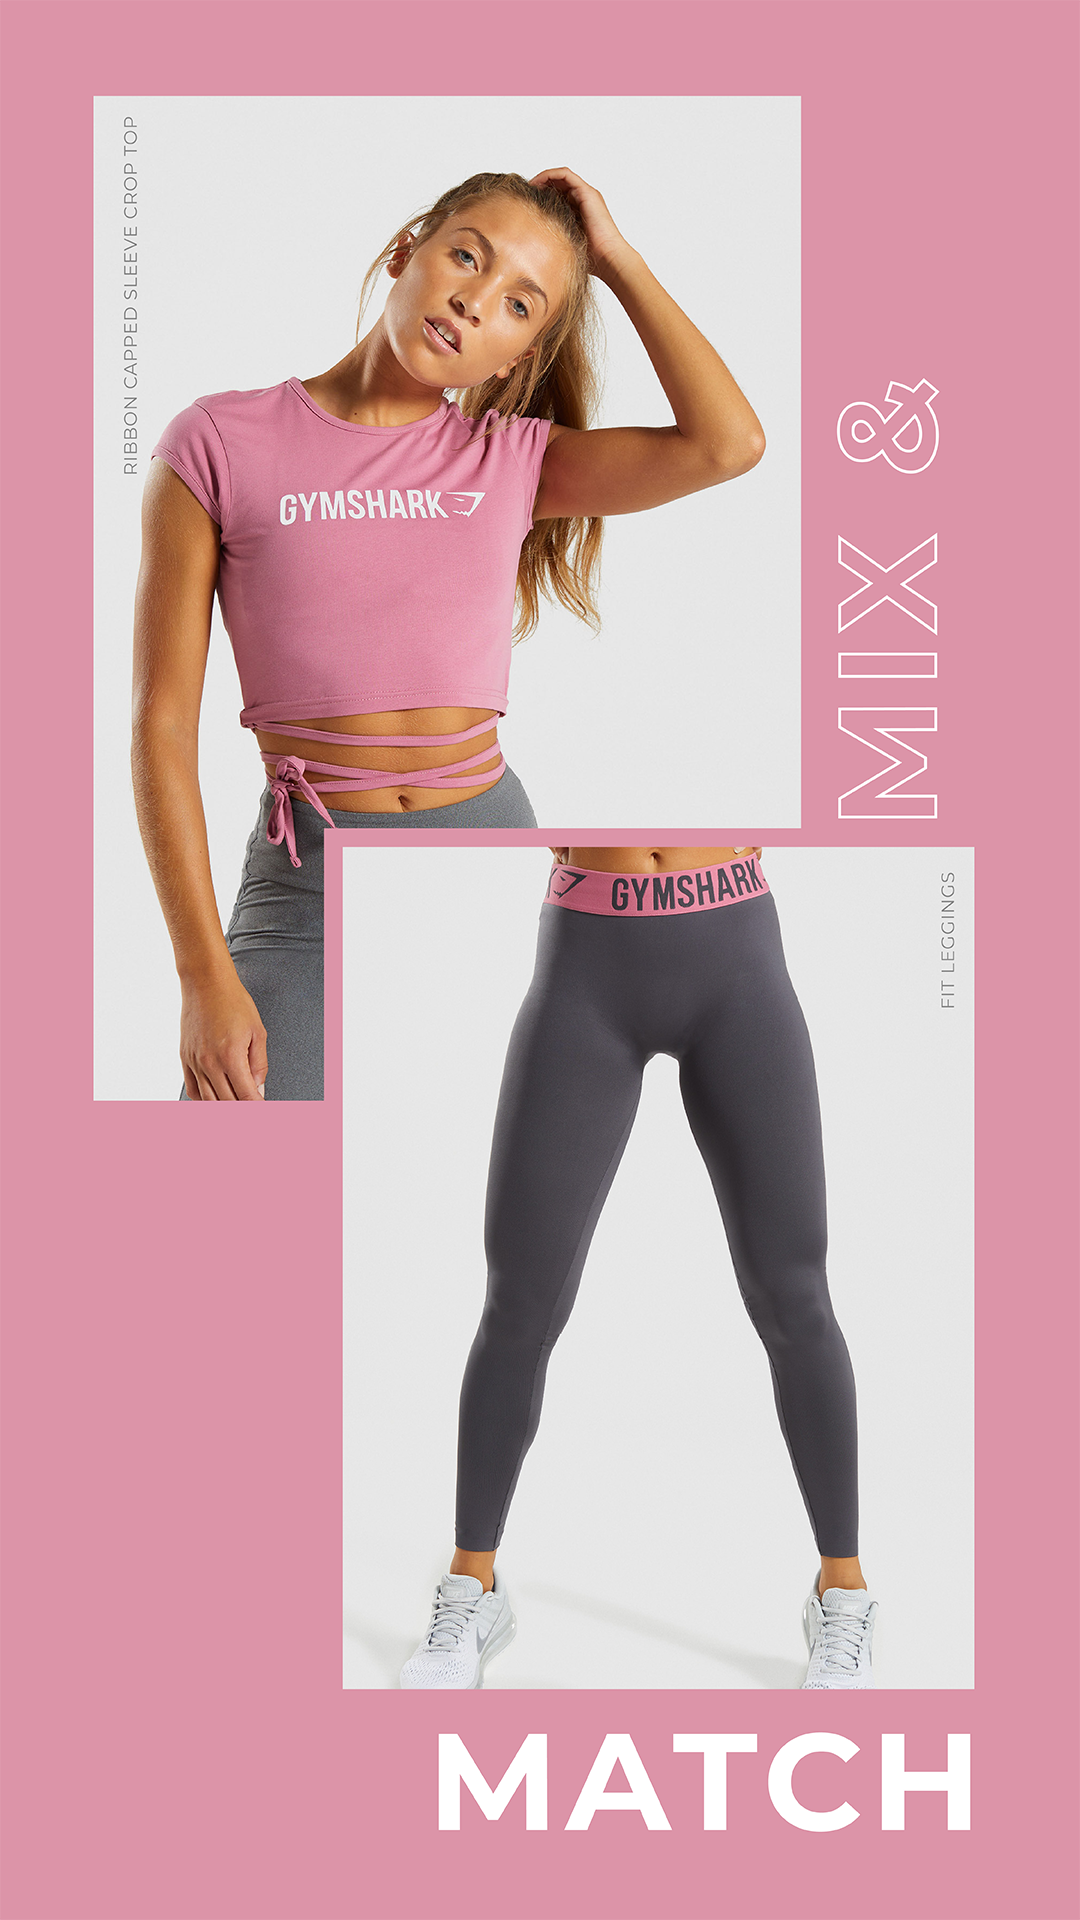 69e2d60624251 Mix   Match the Fit Leggings and Ribbon Capped Sleeve Crop Top.  Gymshark   Gym  Seamless  Exercise  Strength  Strong  Power  Fitness   OutfitInspiration ...